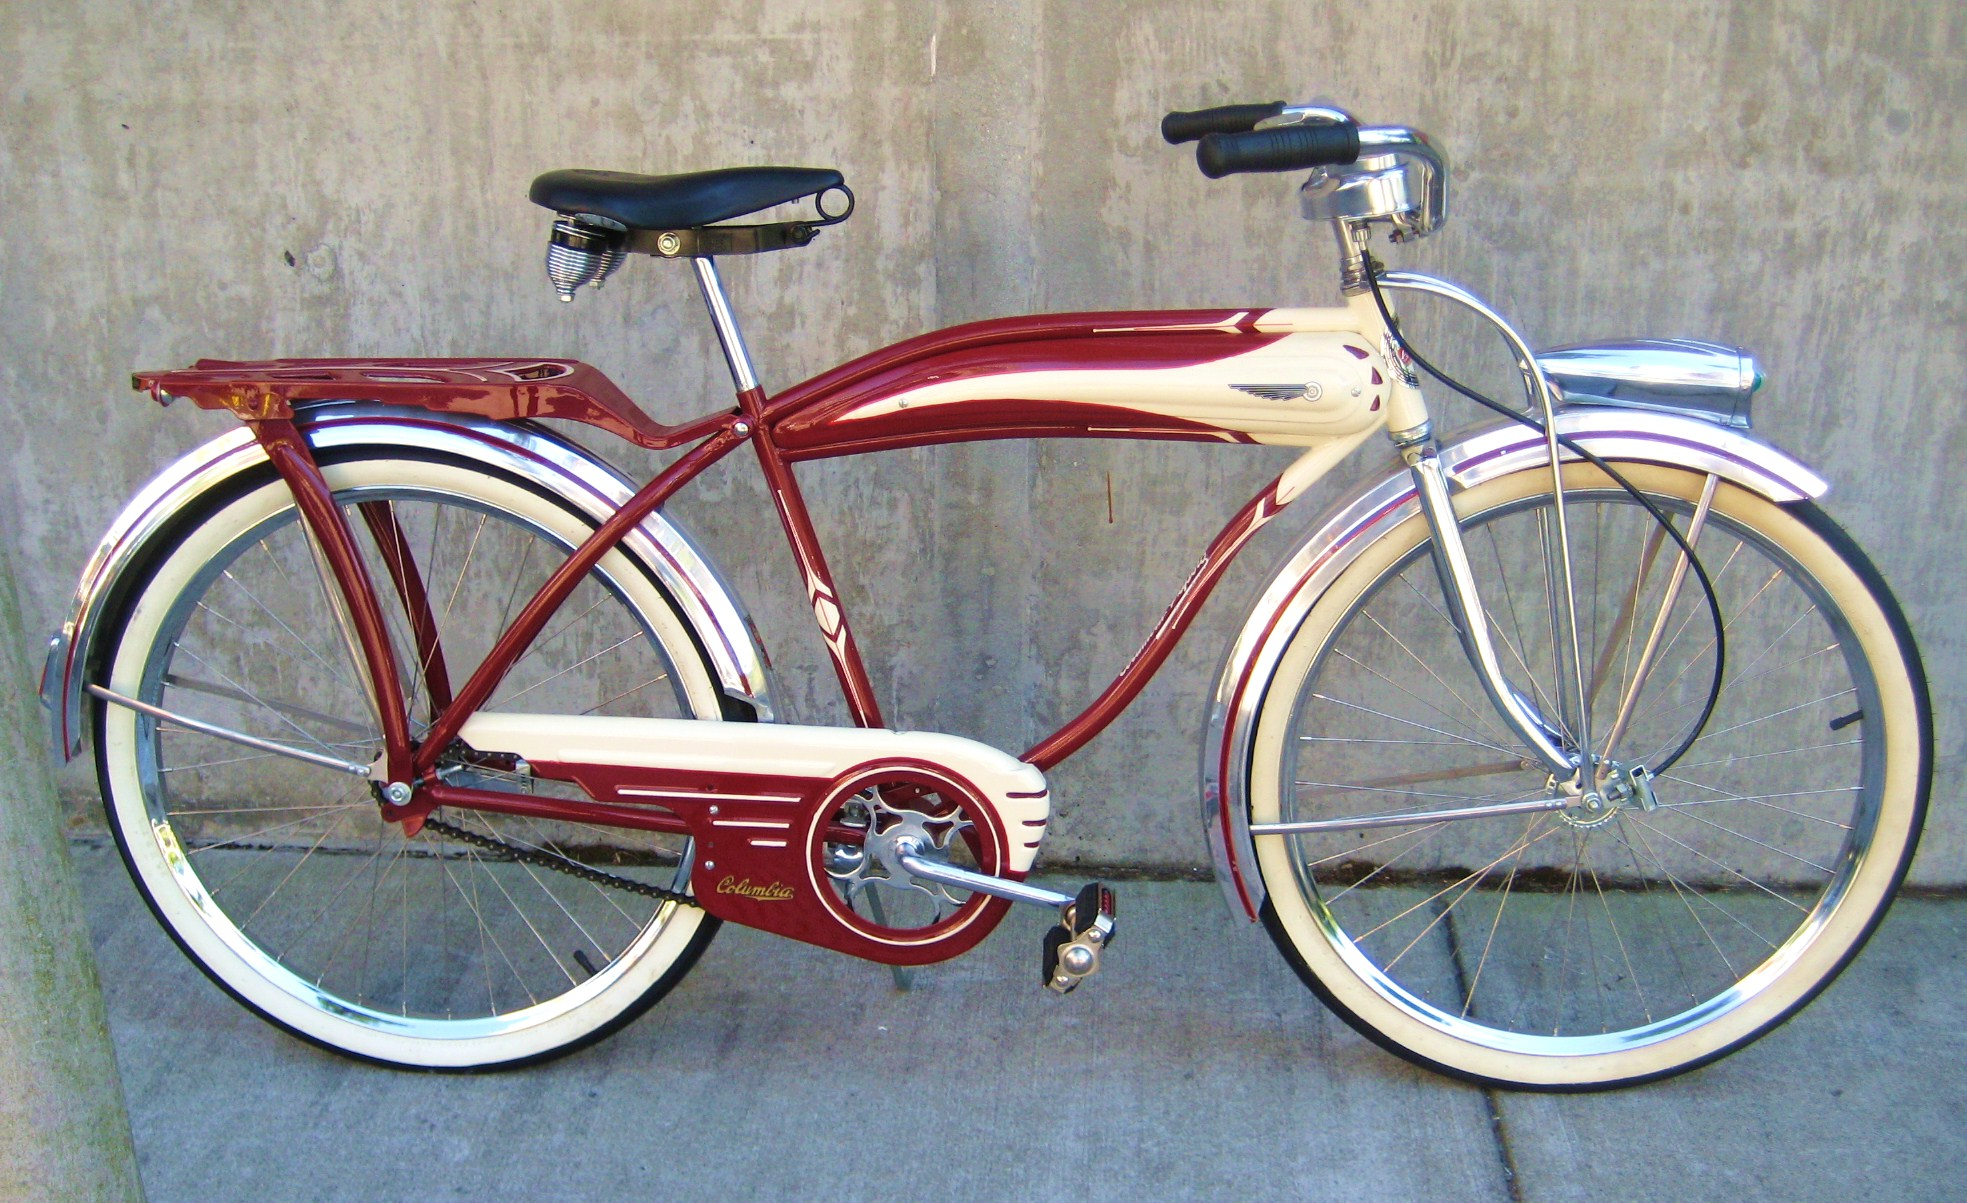 1941 Columbia Superb Bicycle Replica Classic Cycle Bainbridge